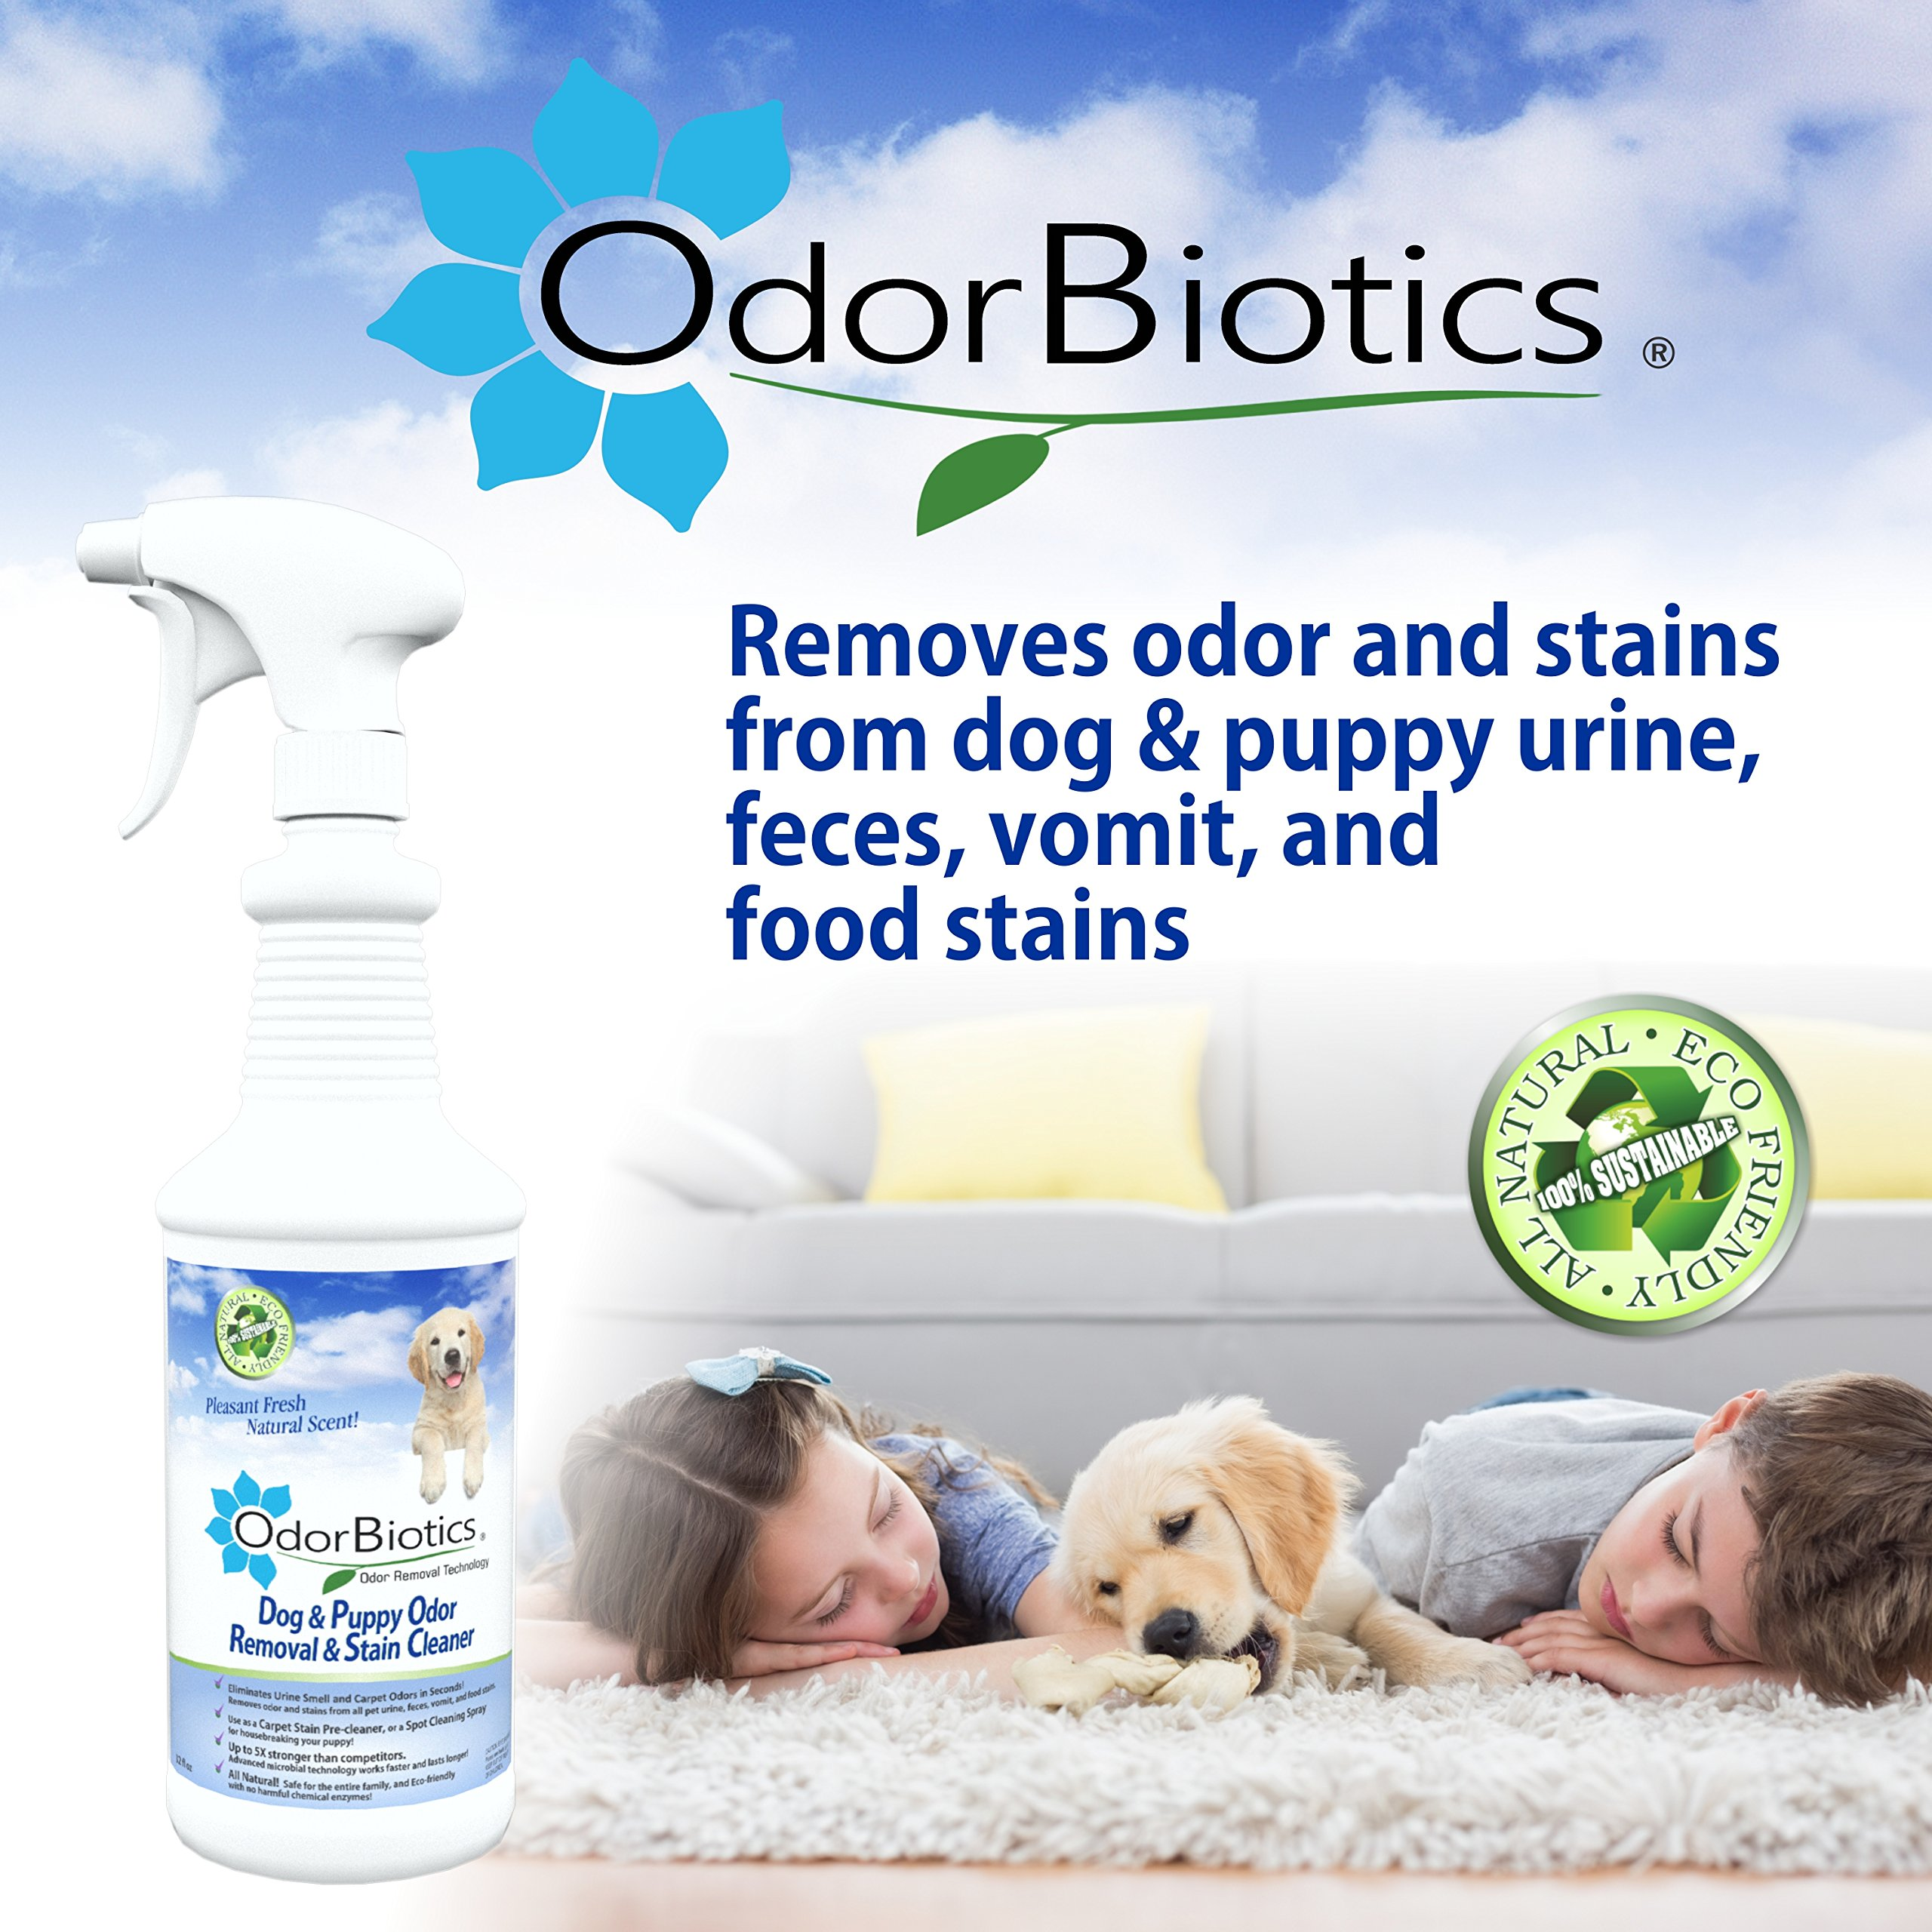 OdorBiotics Pet Stain & Odor Remover for Dog Beds, Playpens, Crates, Carriers, Kennels, Clothes, Puppy Toys, Eliminate Urine Smell on Carpet, Rugs, Hardwood Floors, Sofa Fabric, 128 oz Economy Size by OdorBiotics (Image #6)